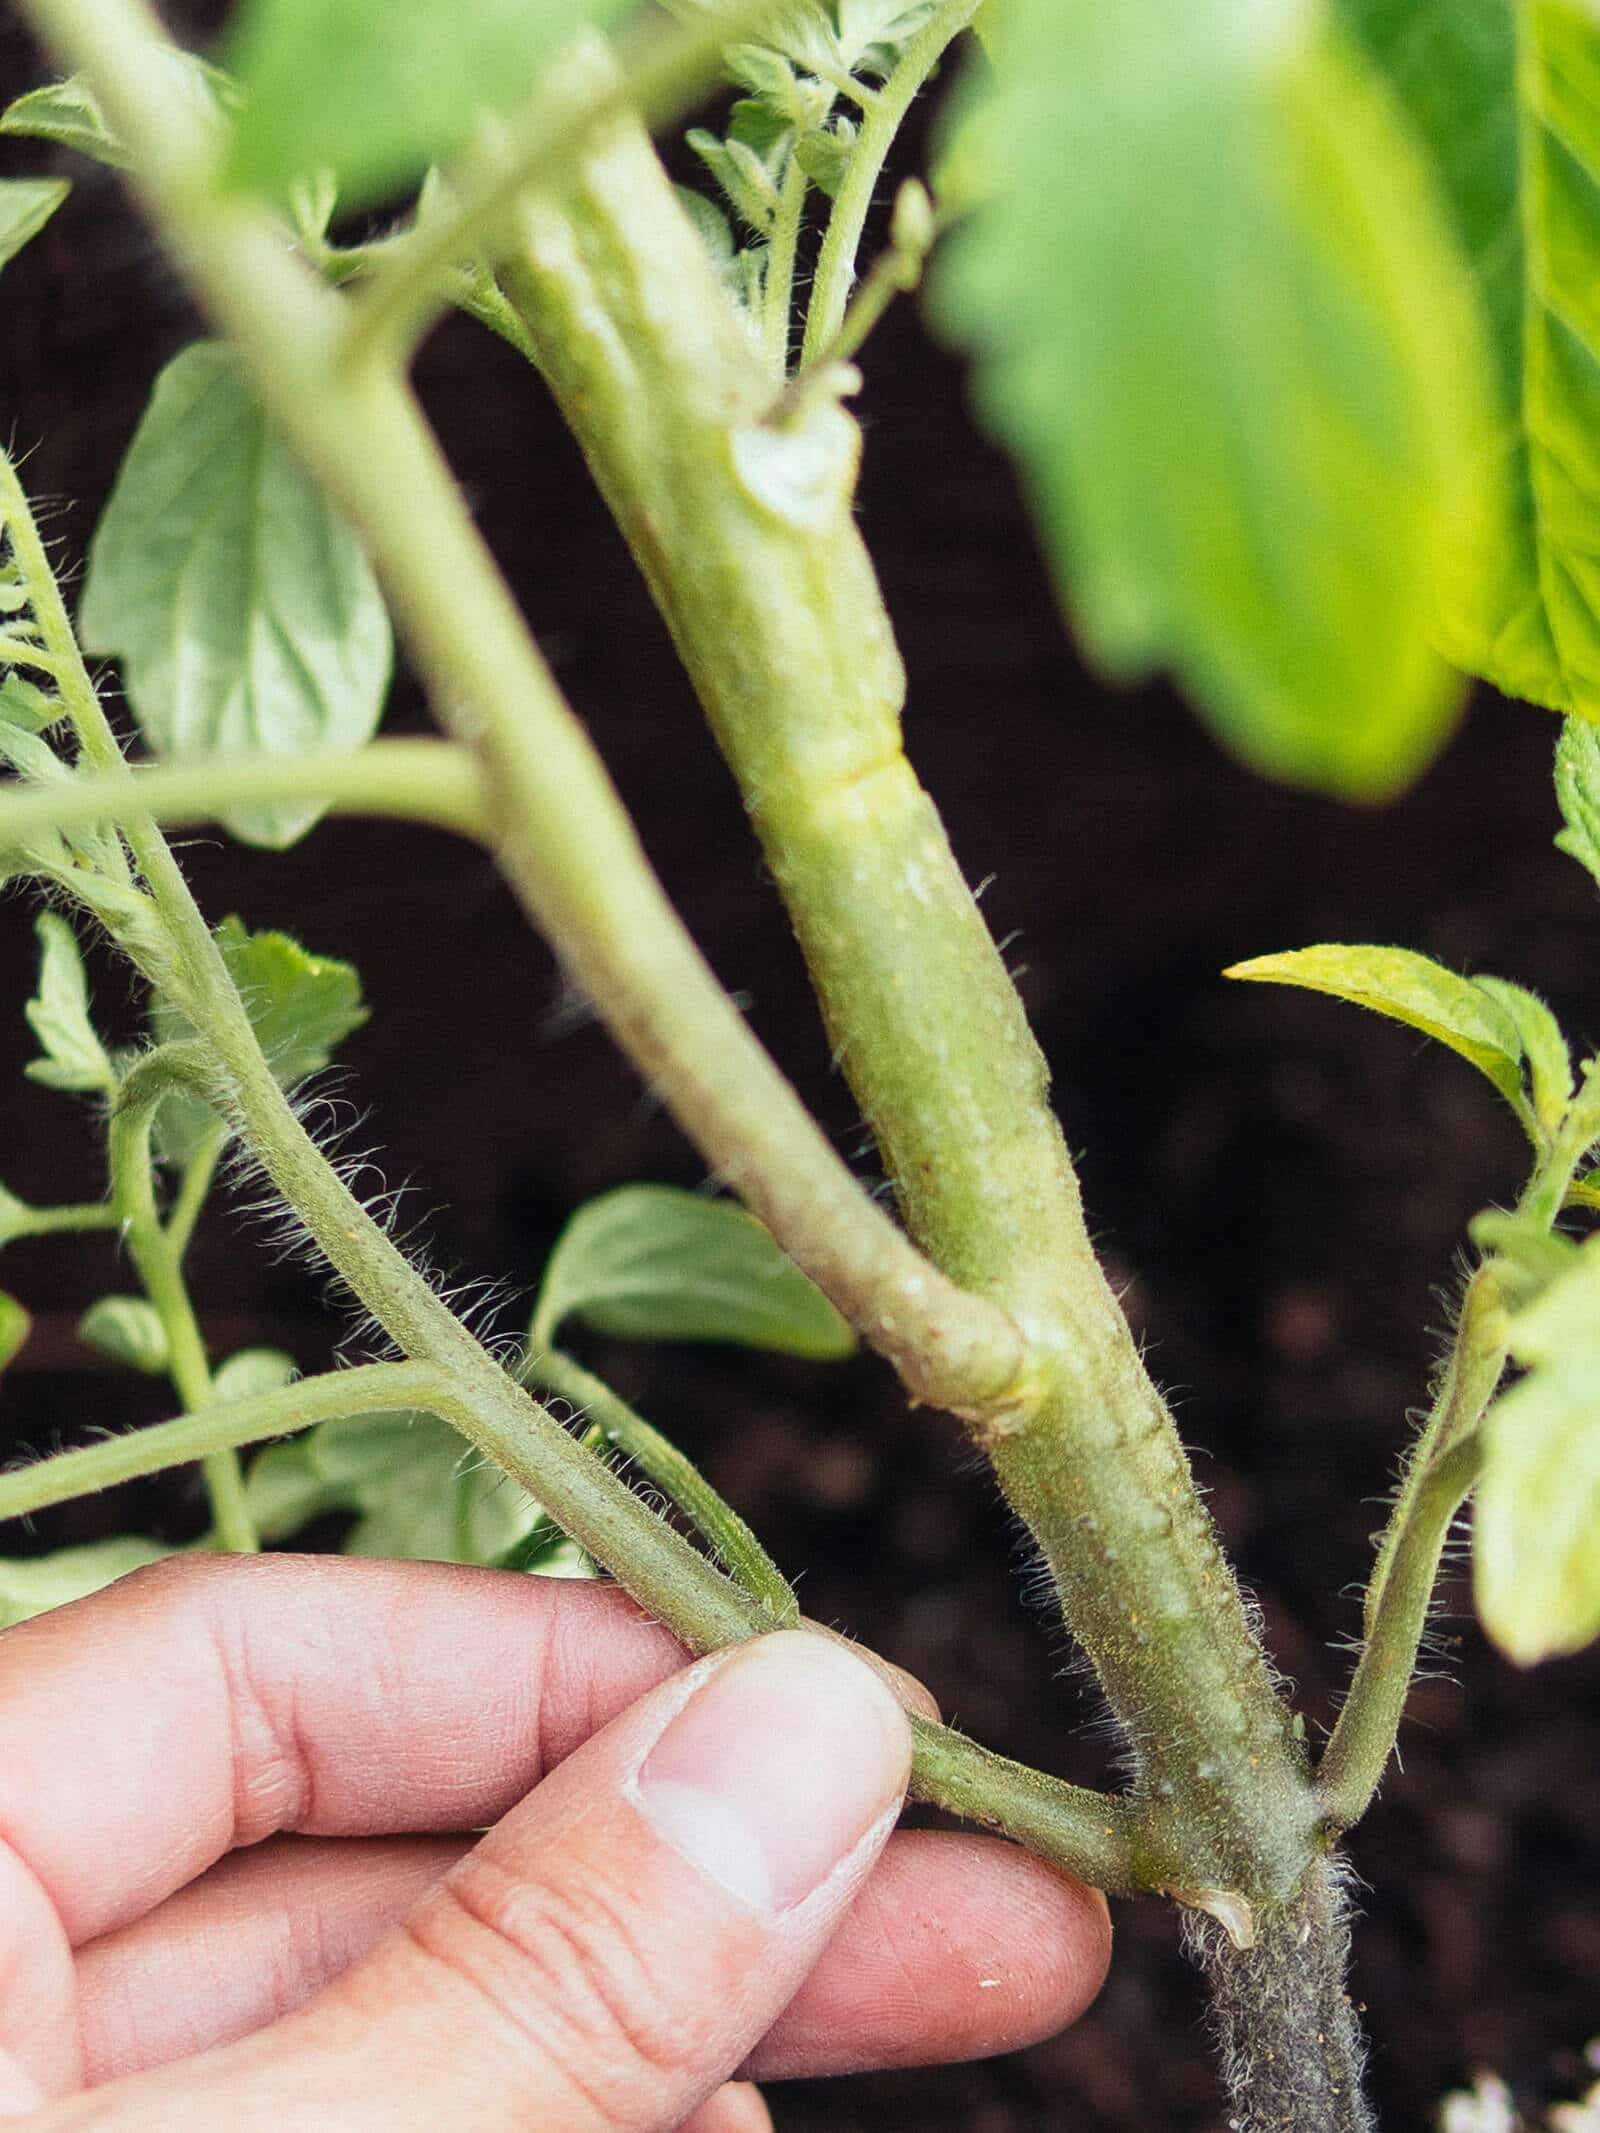 Tomato stem primordia (tiny bumps on the stem that are the earliest stage of root development)